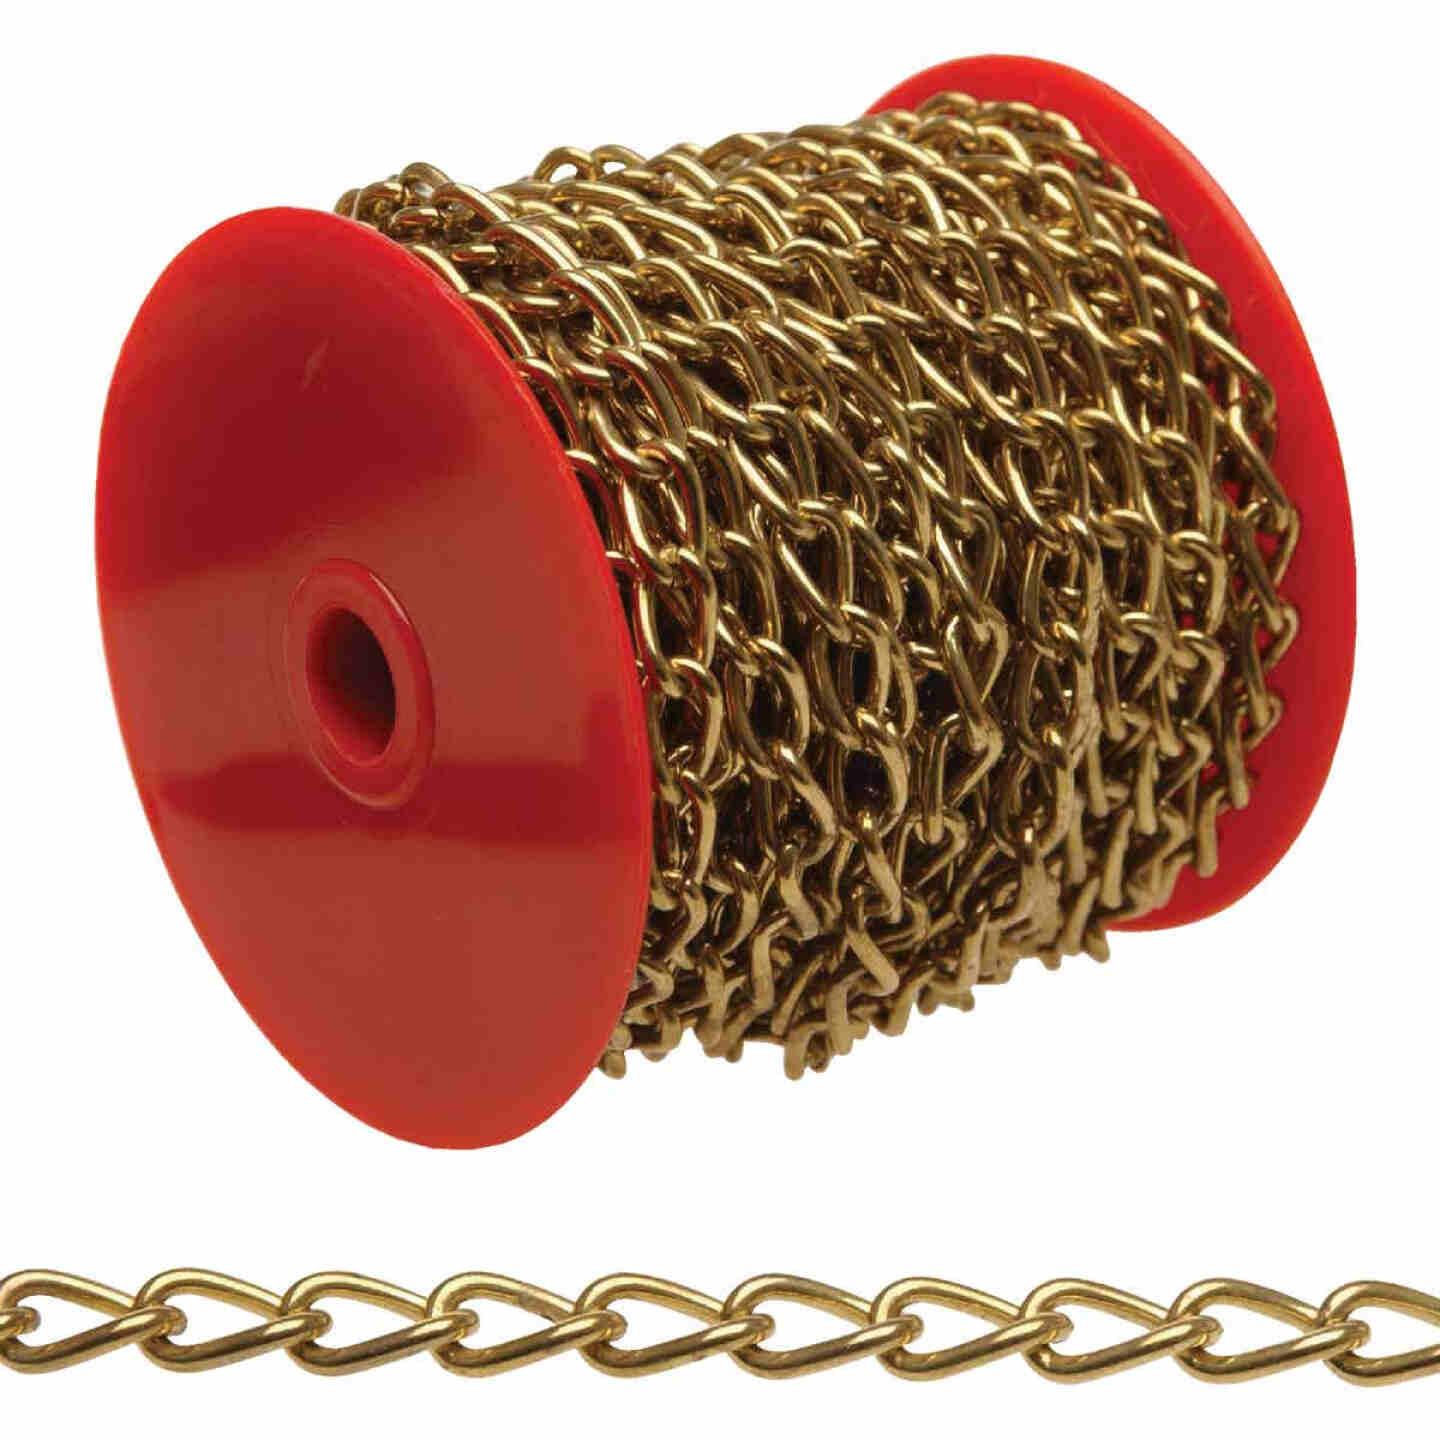 Campbell #90 82 Ft. Nickel-Plated Metal Craft Chain Image 1